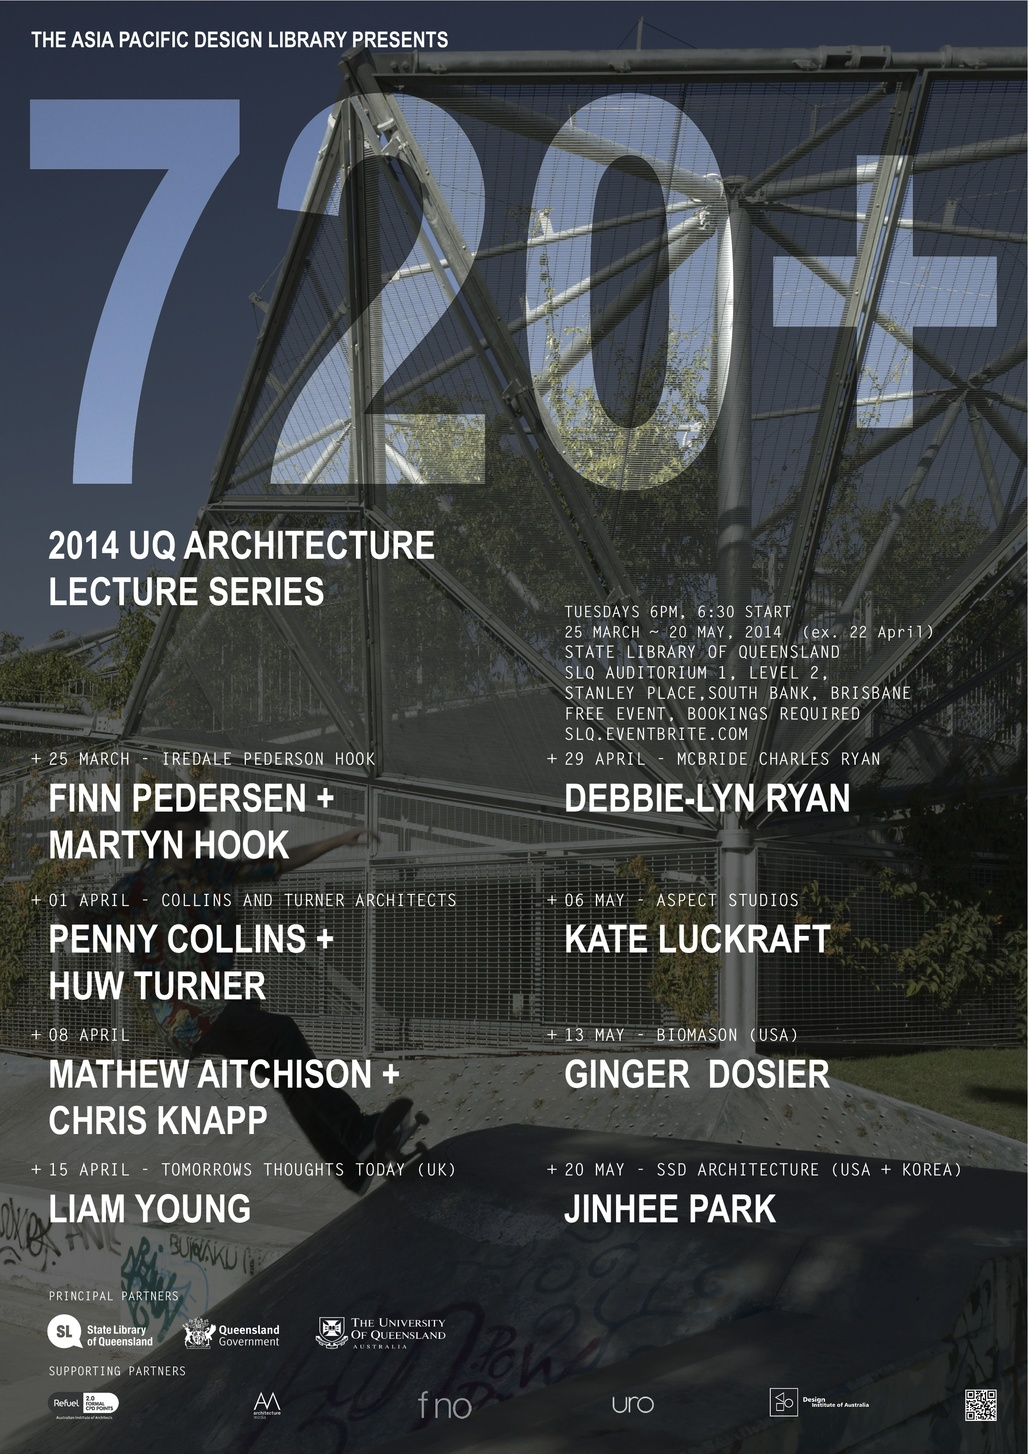 720+ Lecture Series from the University of Queensland, School of Architecture. Courtesy of UQ School of Architecture